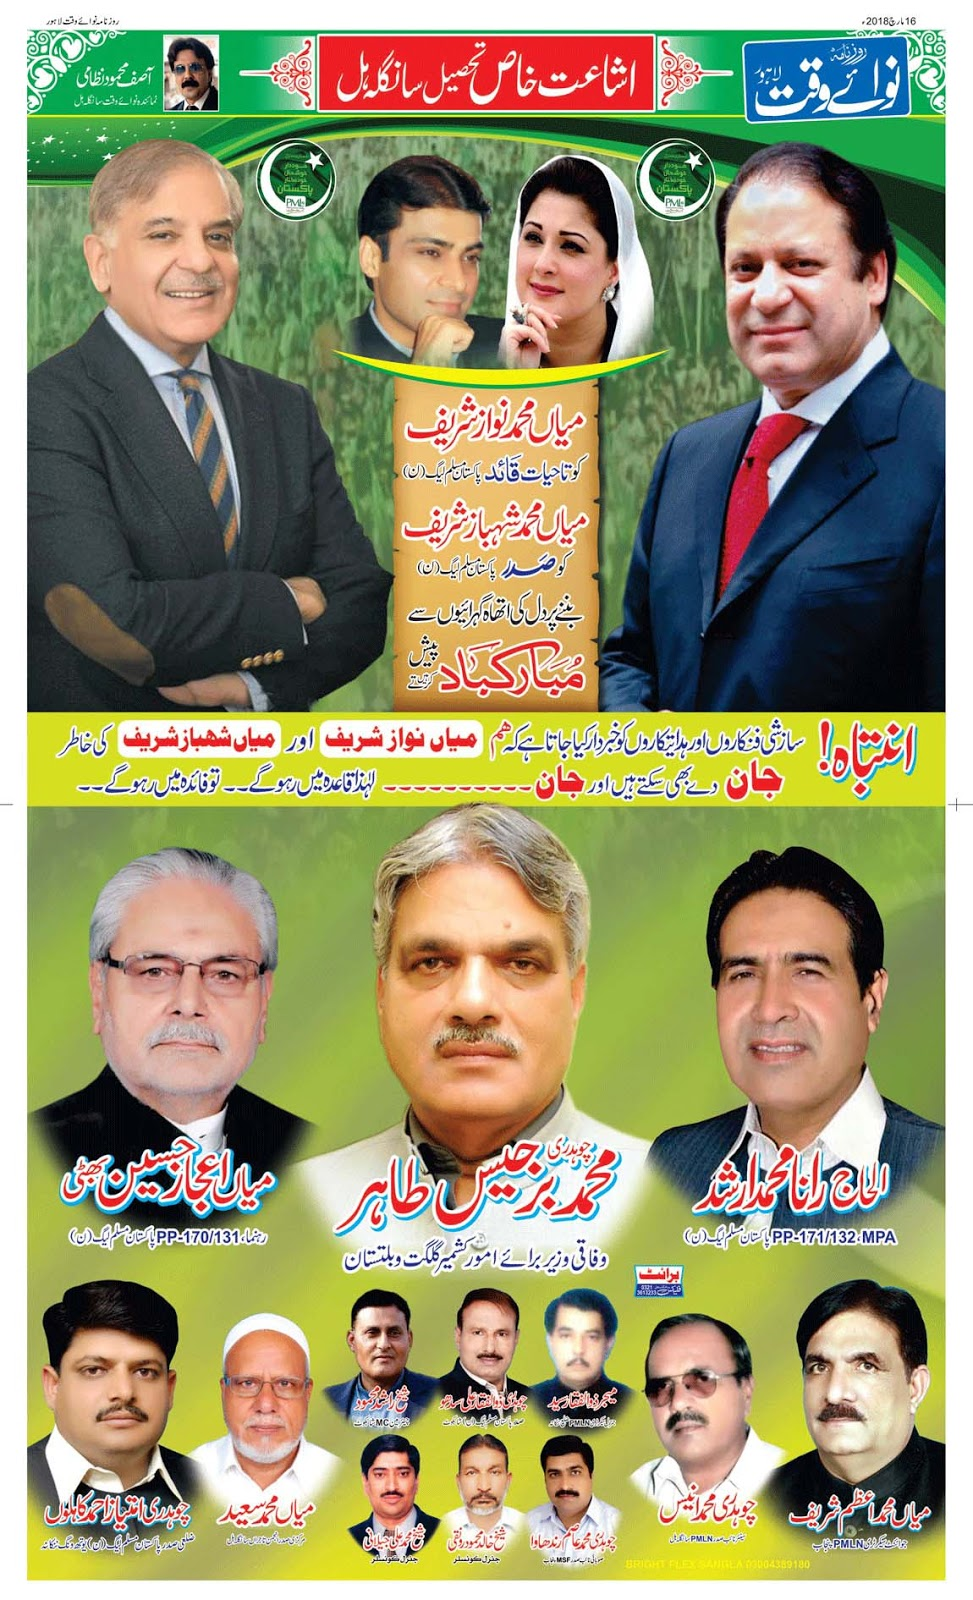 PMLN Threatening Advertisement published in News Papers